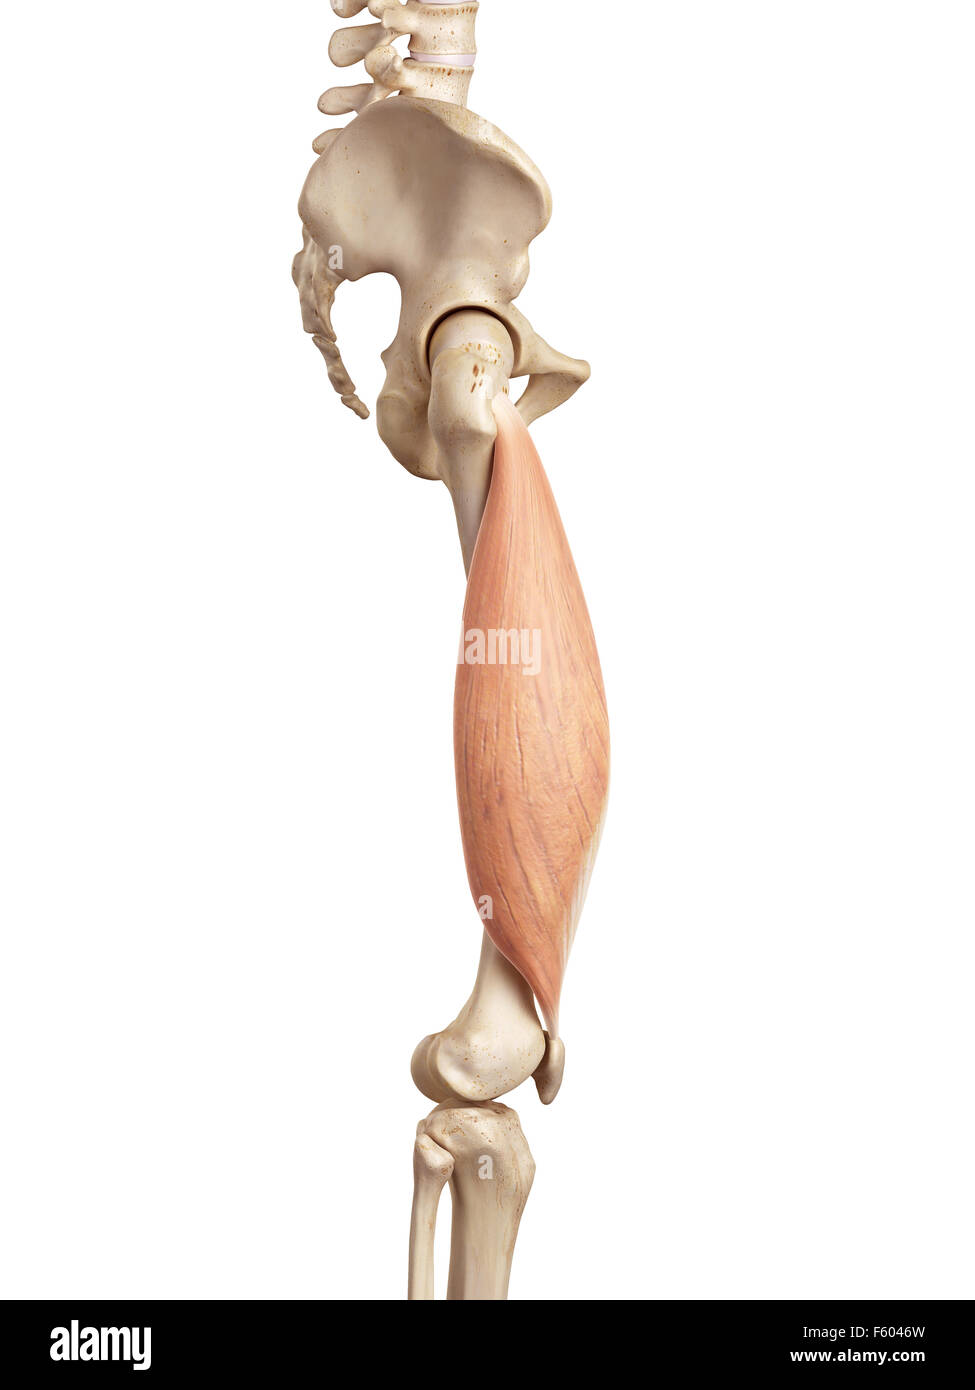 medical accurate illustration of the vastus lateralis - Stock Image